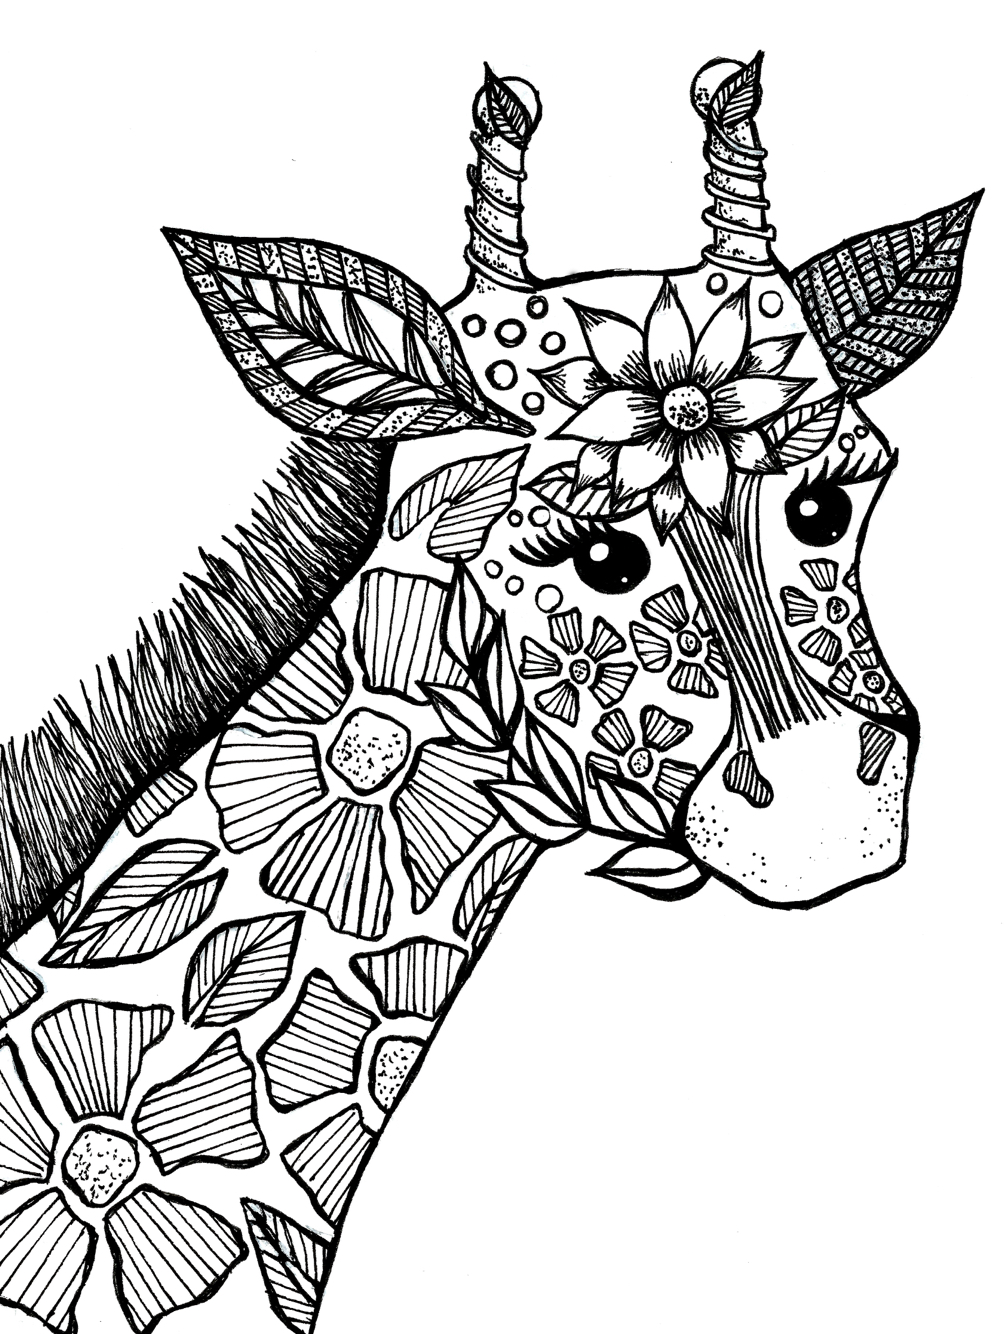 1004x1334 Adult Coloring Pages To Nourish Your Mental